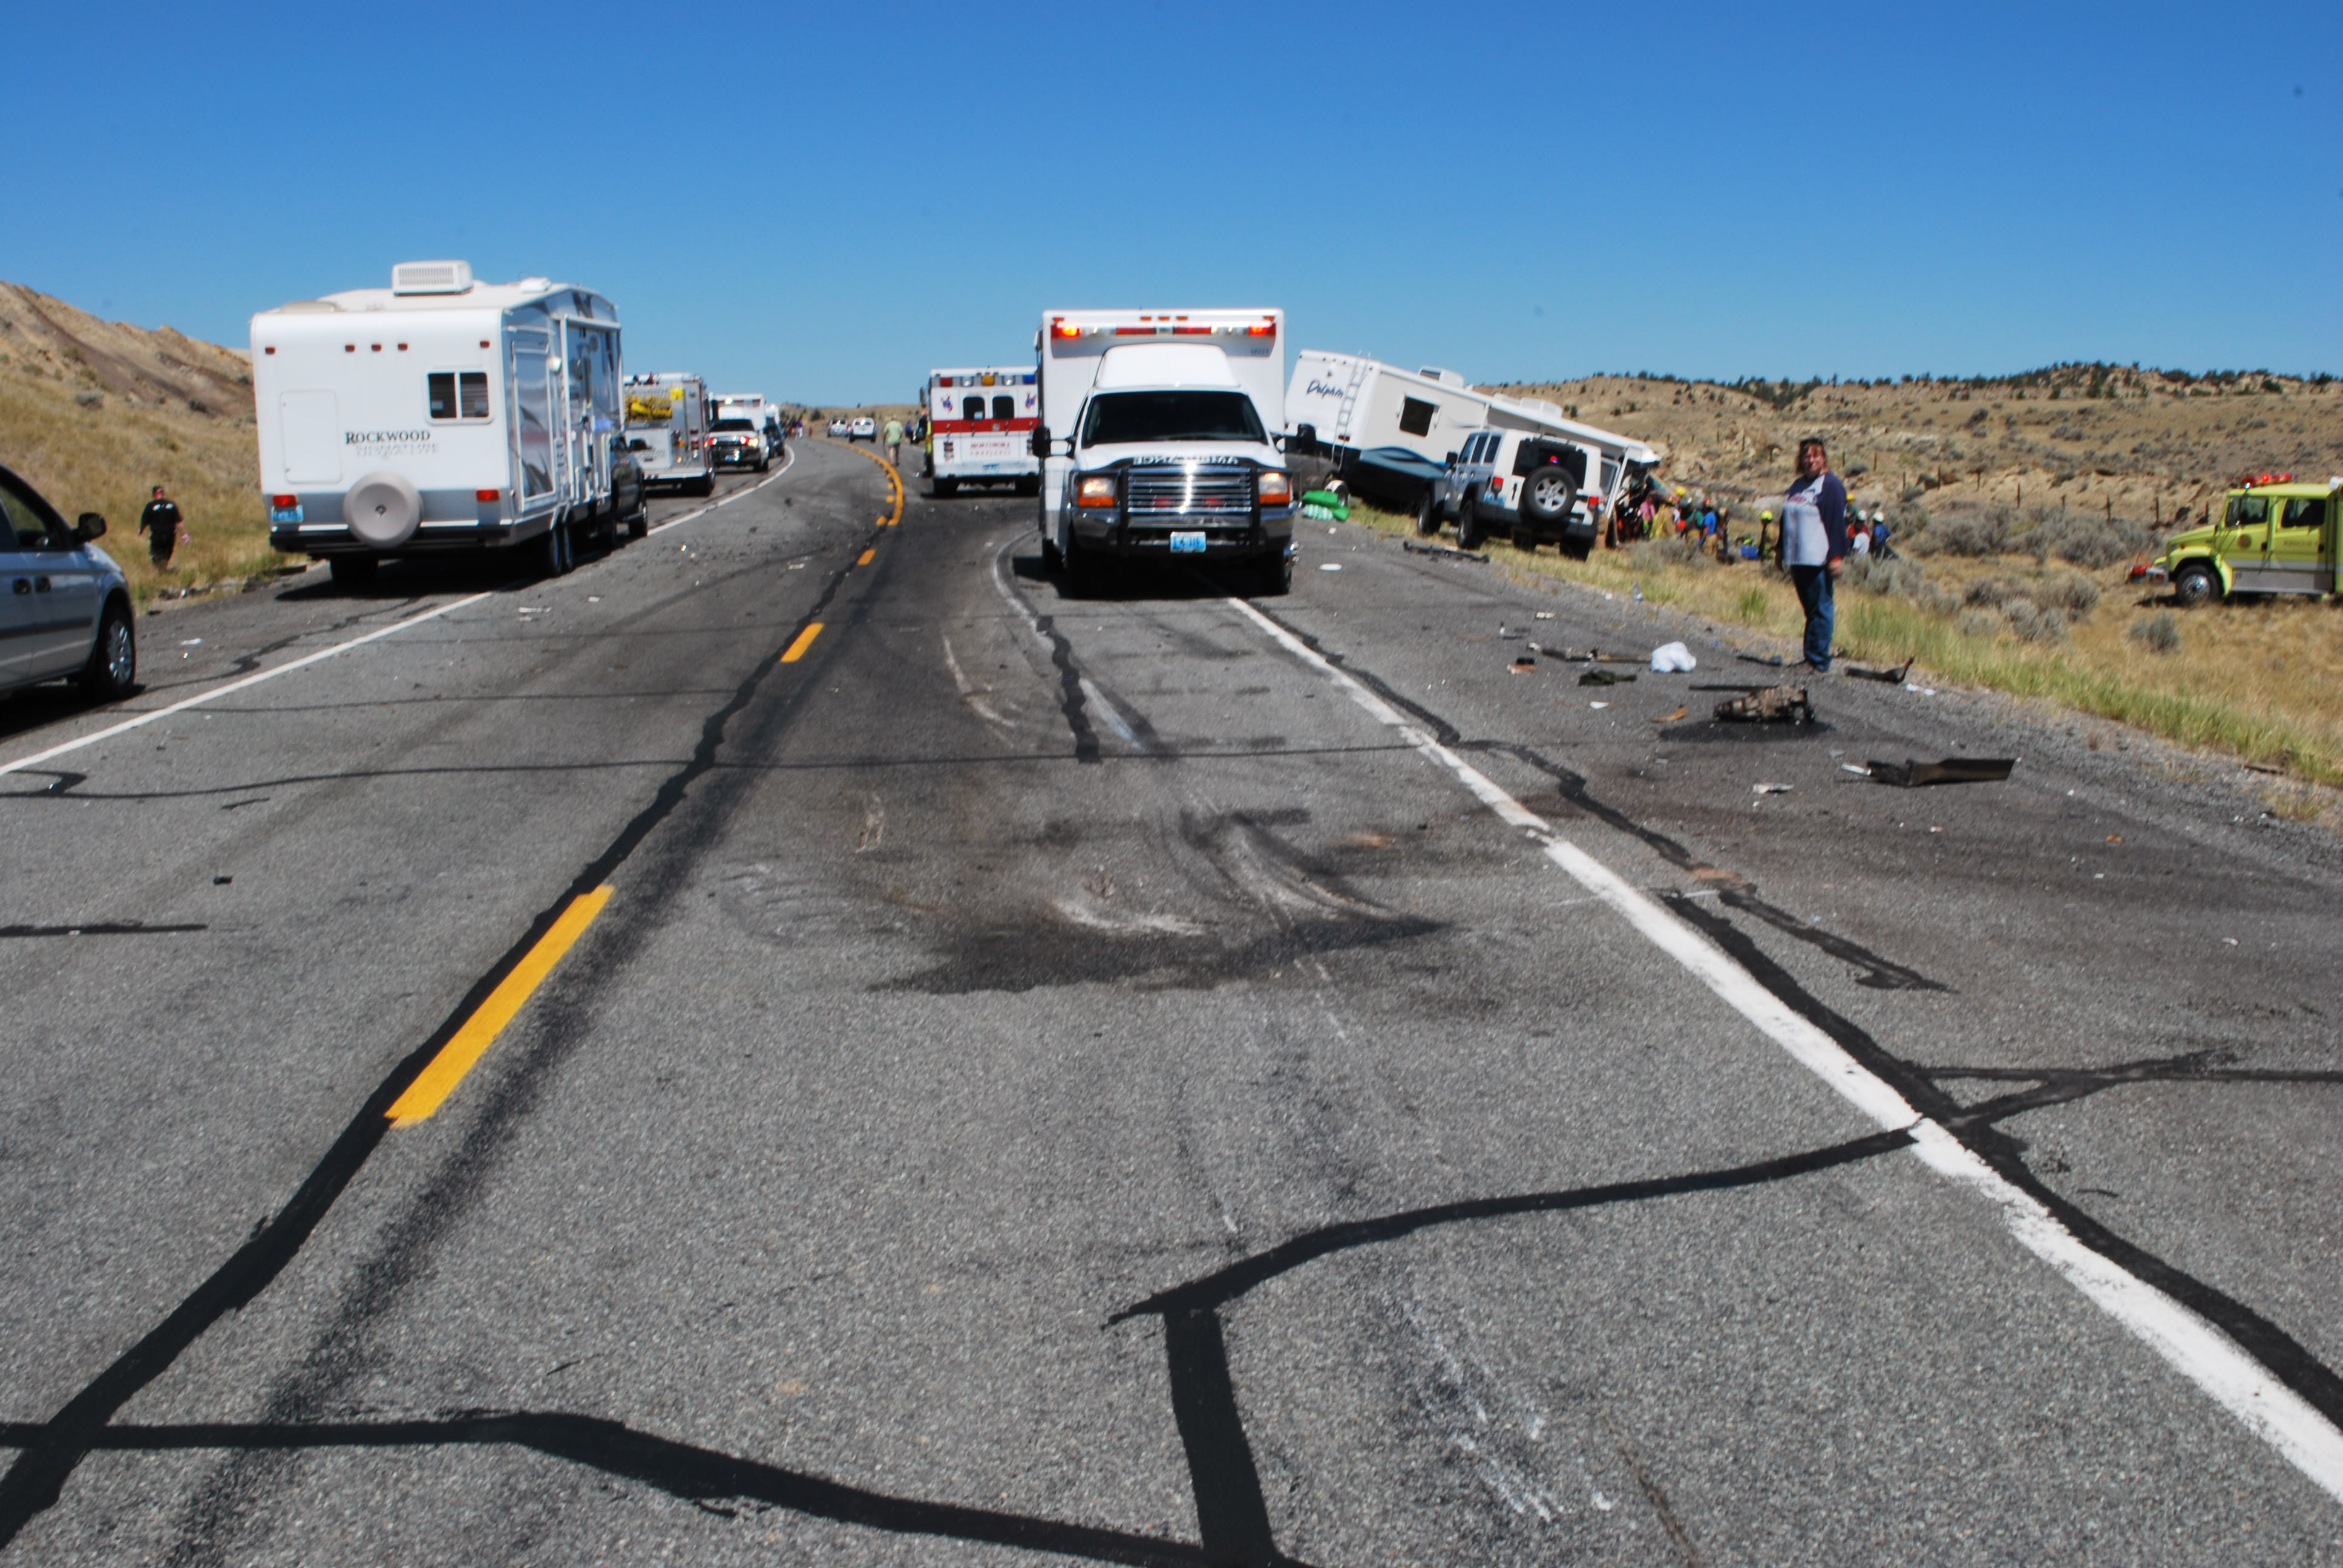 motorhome and suv collide head on